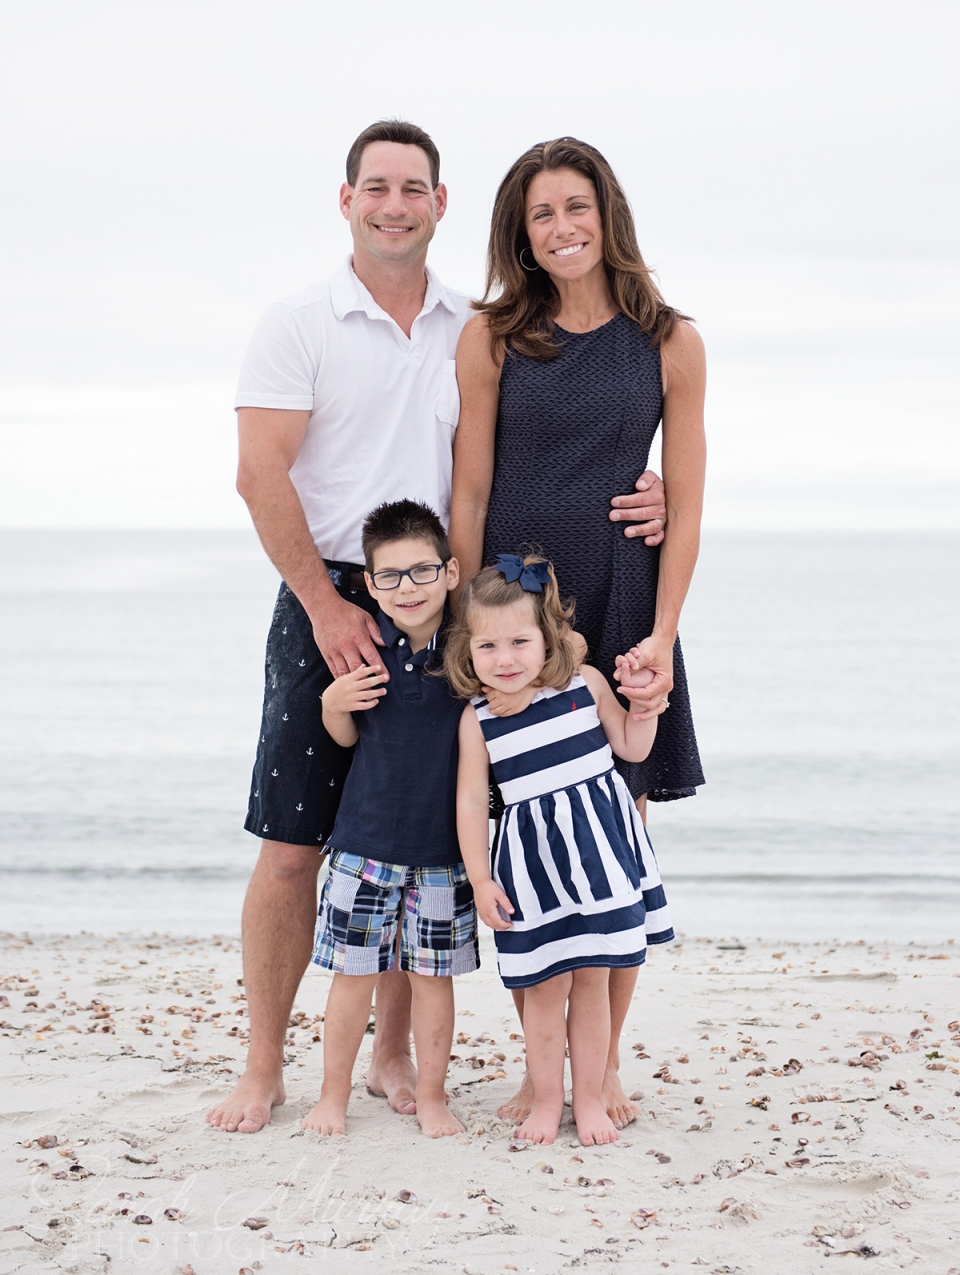 Dowses Beach Cape Cod Family Photo Session in Osterville, Massachusetts - Sarah Murray Photography